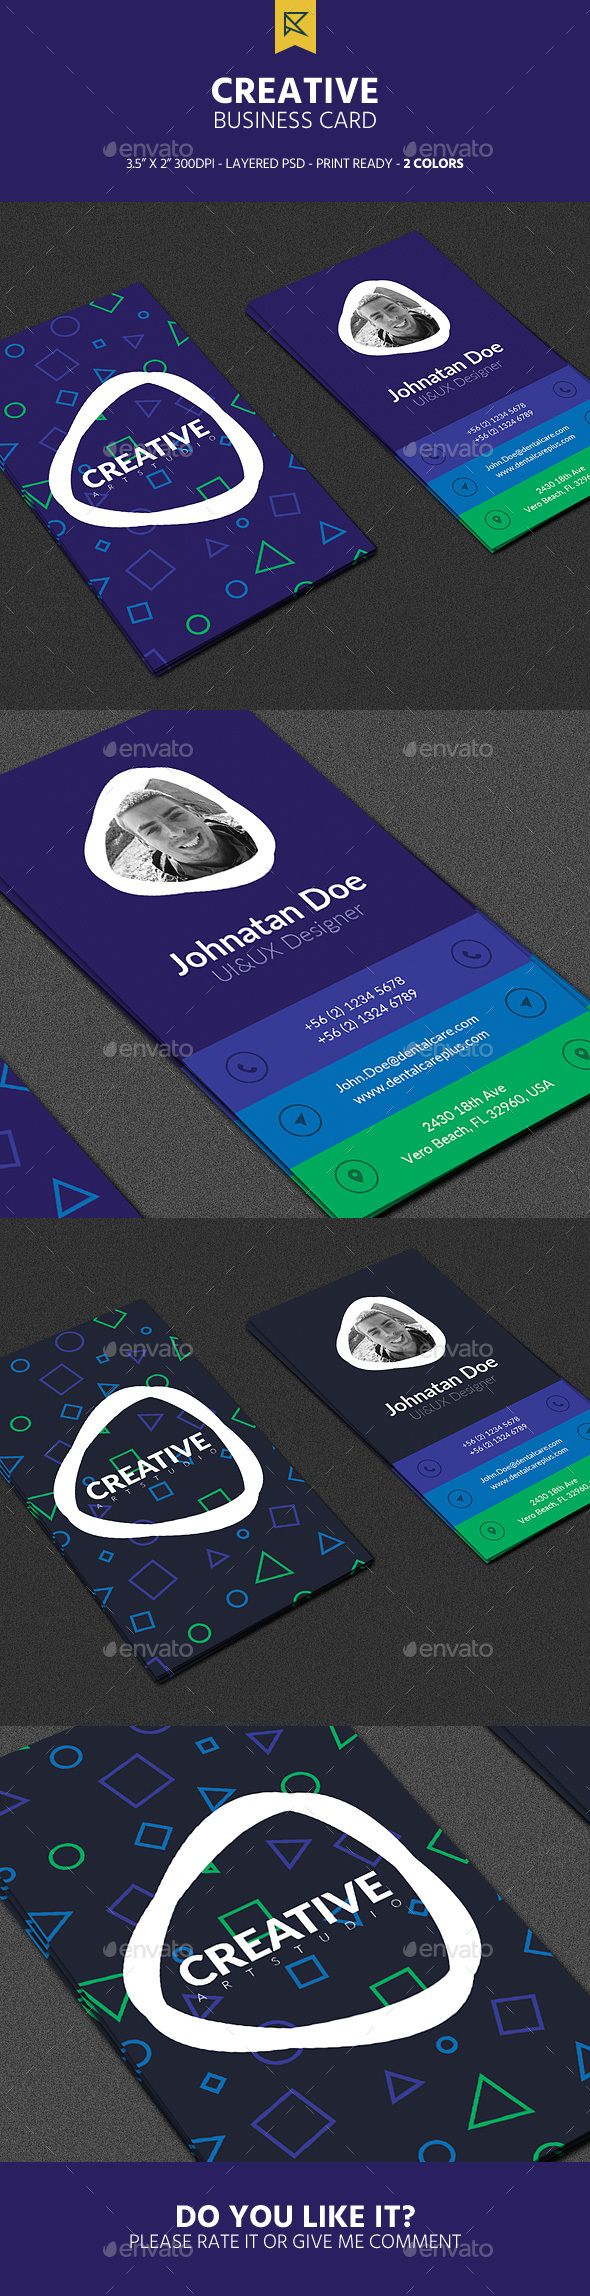 Creative vertical business card cartes de visita visita e carto creative vertical business card design template creative business cards design template psd download here reheart Choice Image